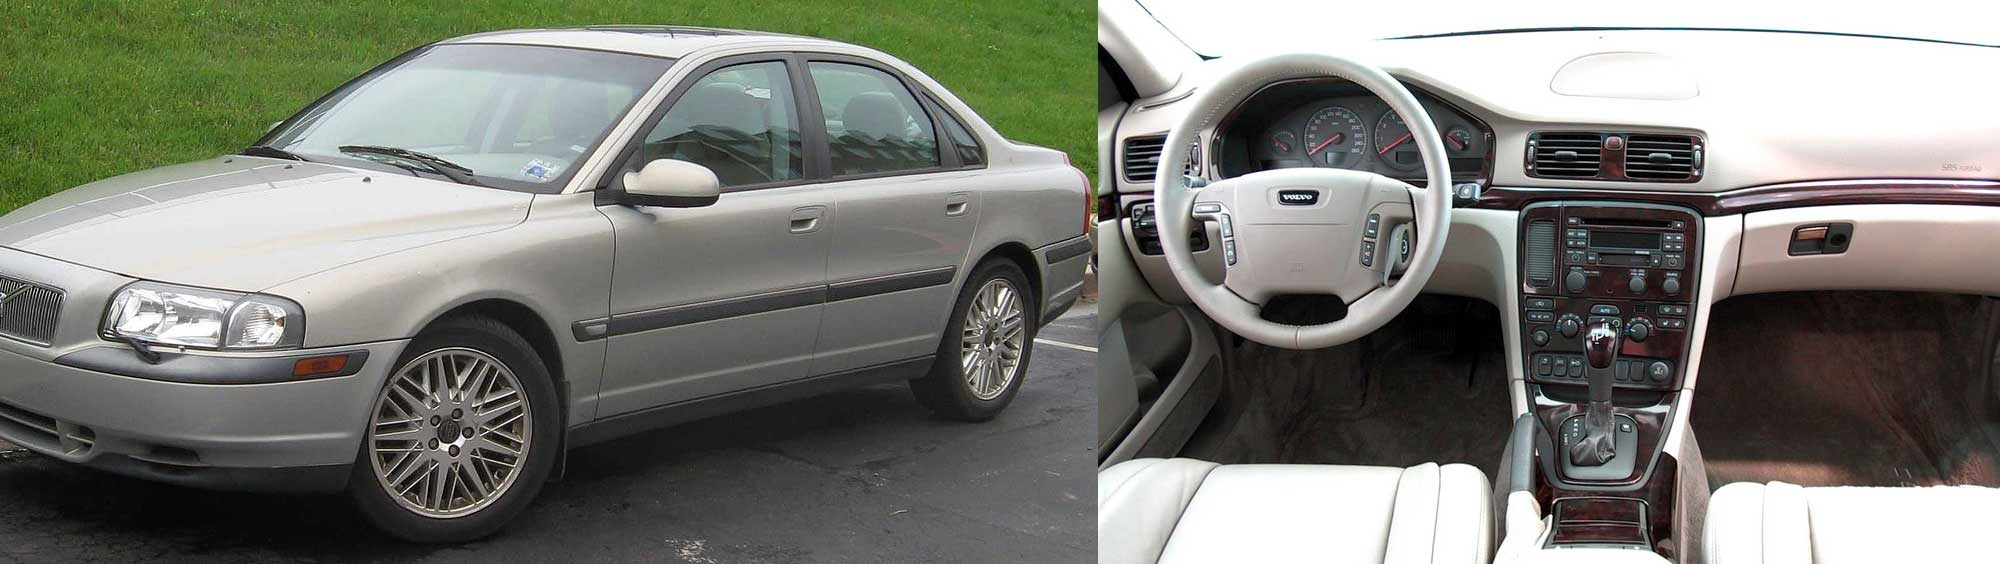 First generation Volvo S80 - exterior and interior